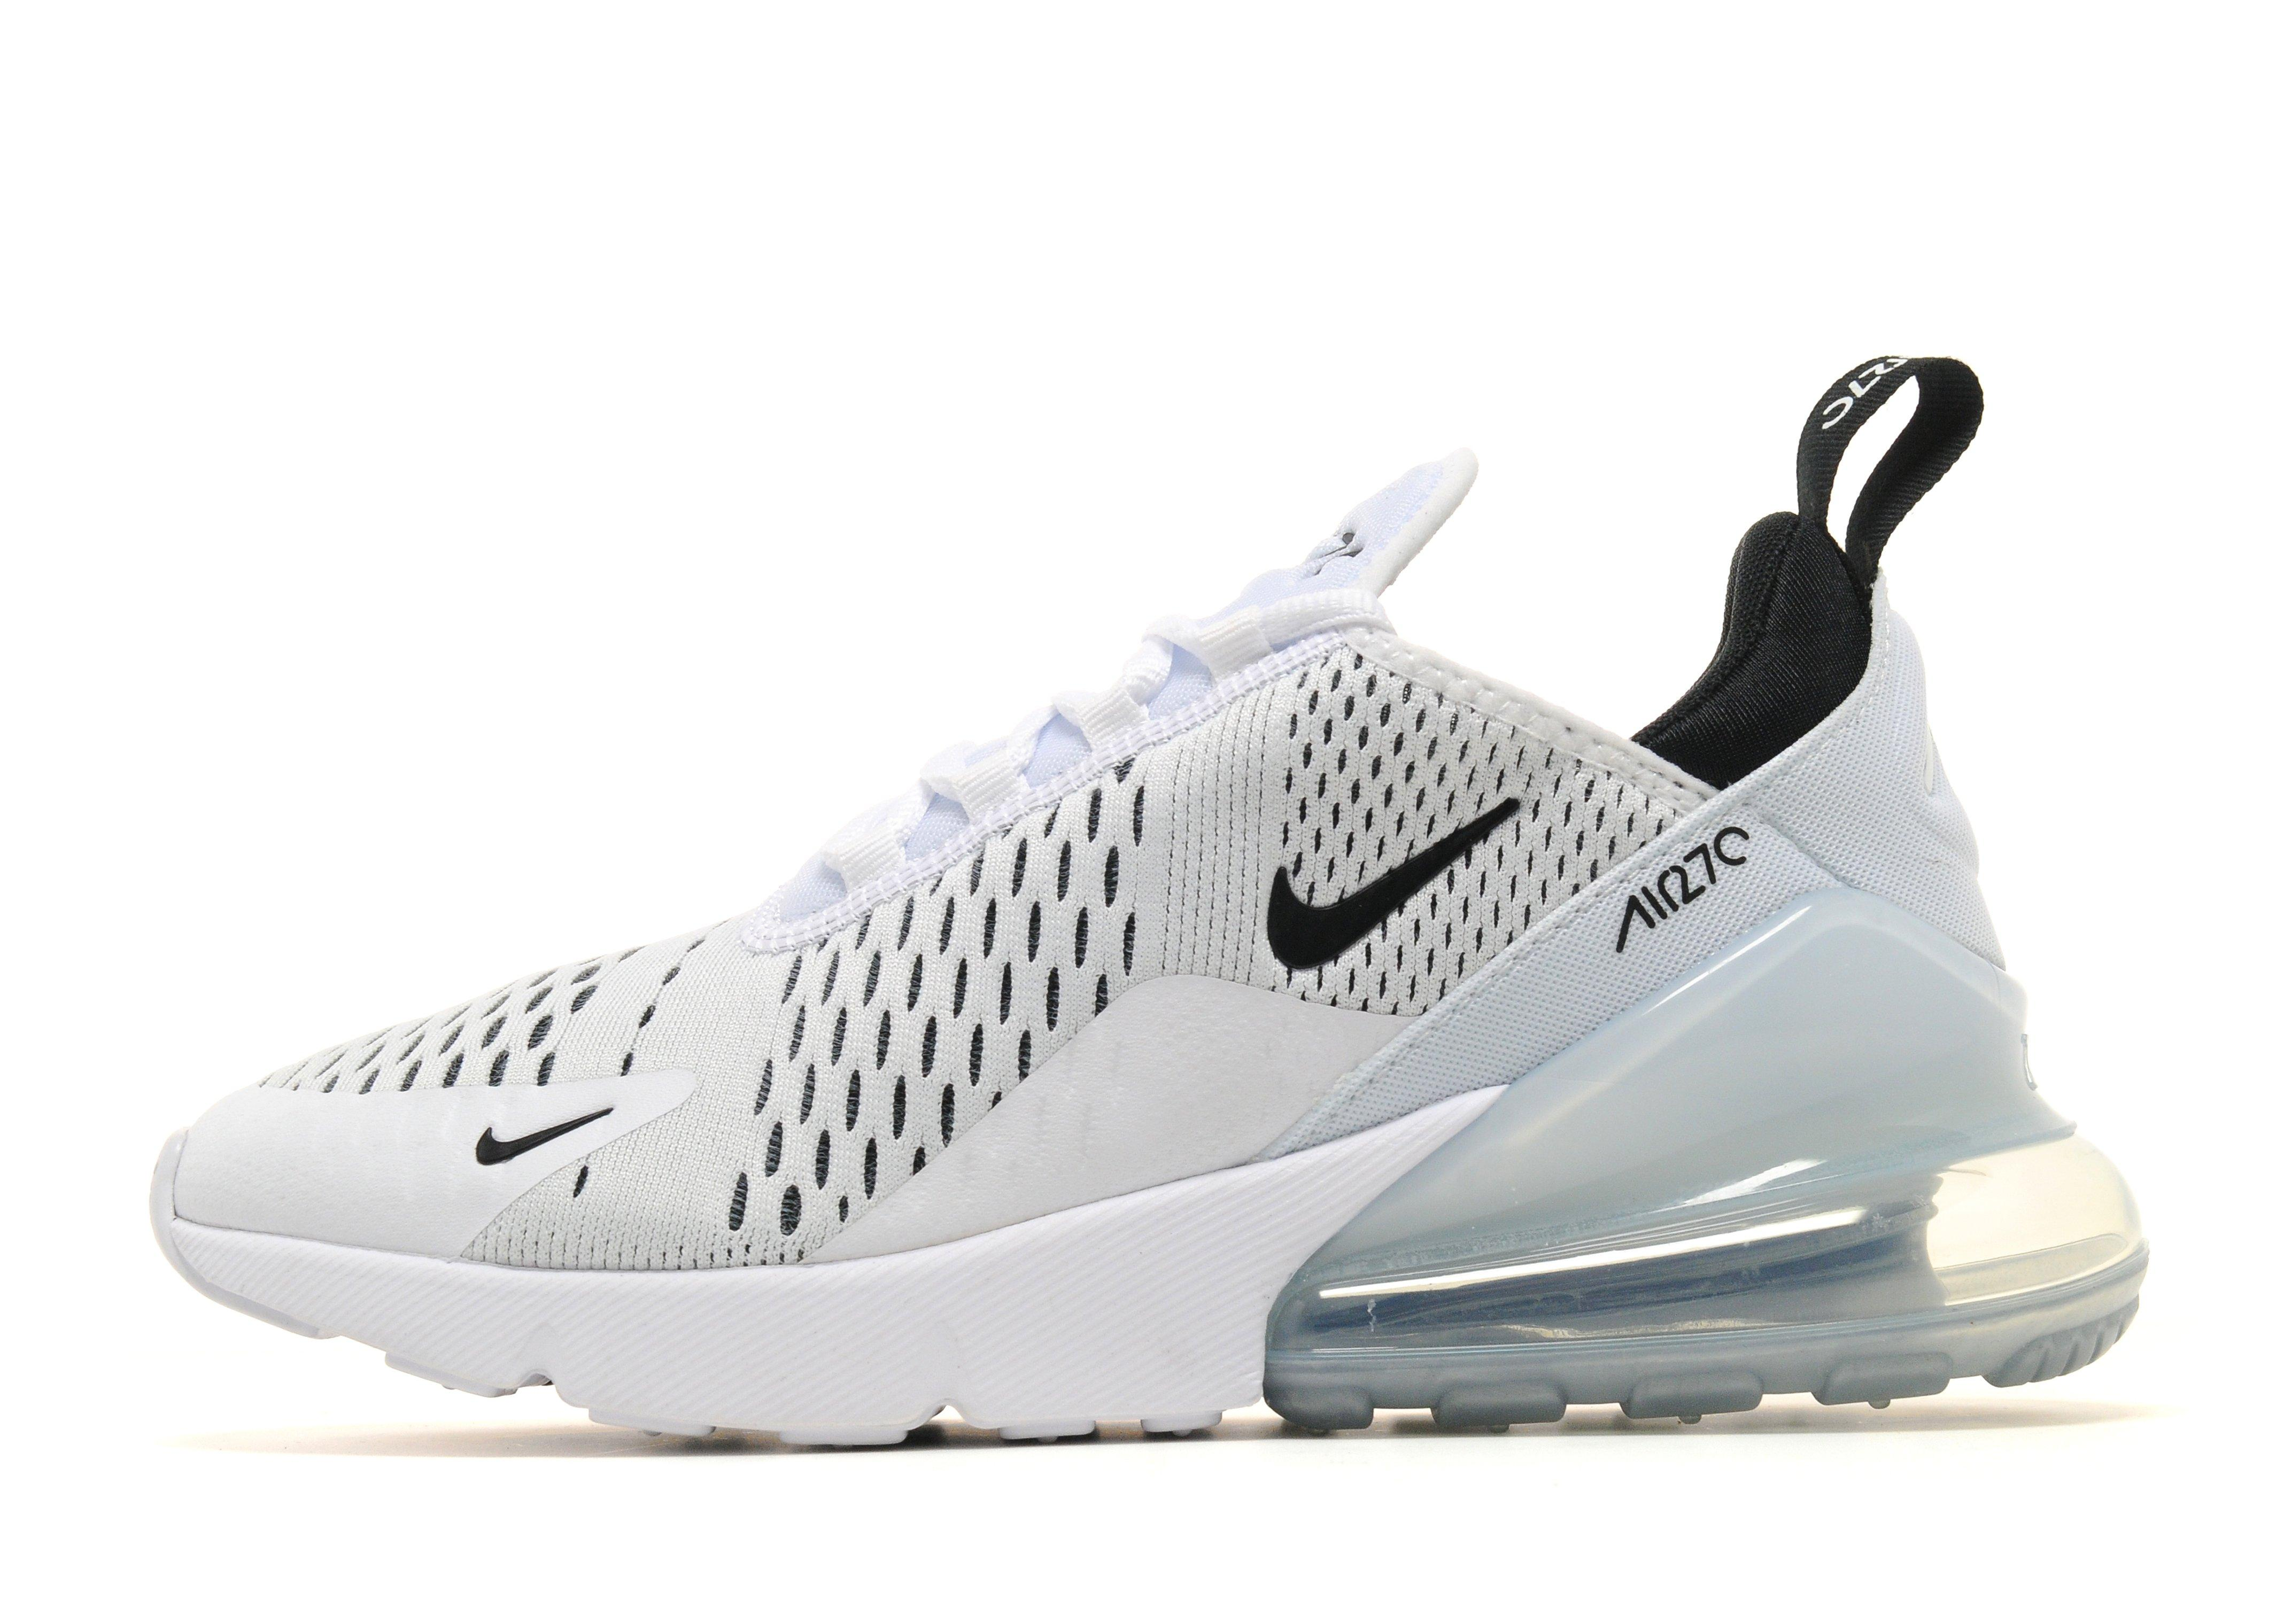 nike shoes that tie themselves price 720 grille 870065